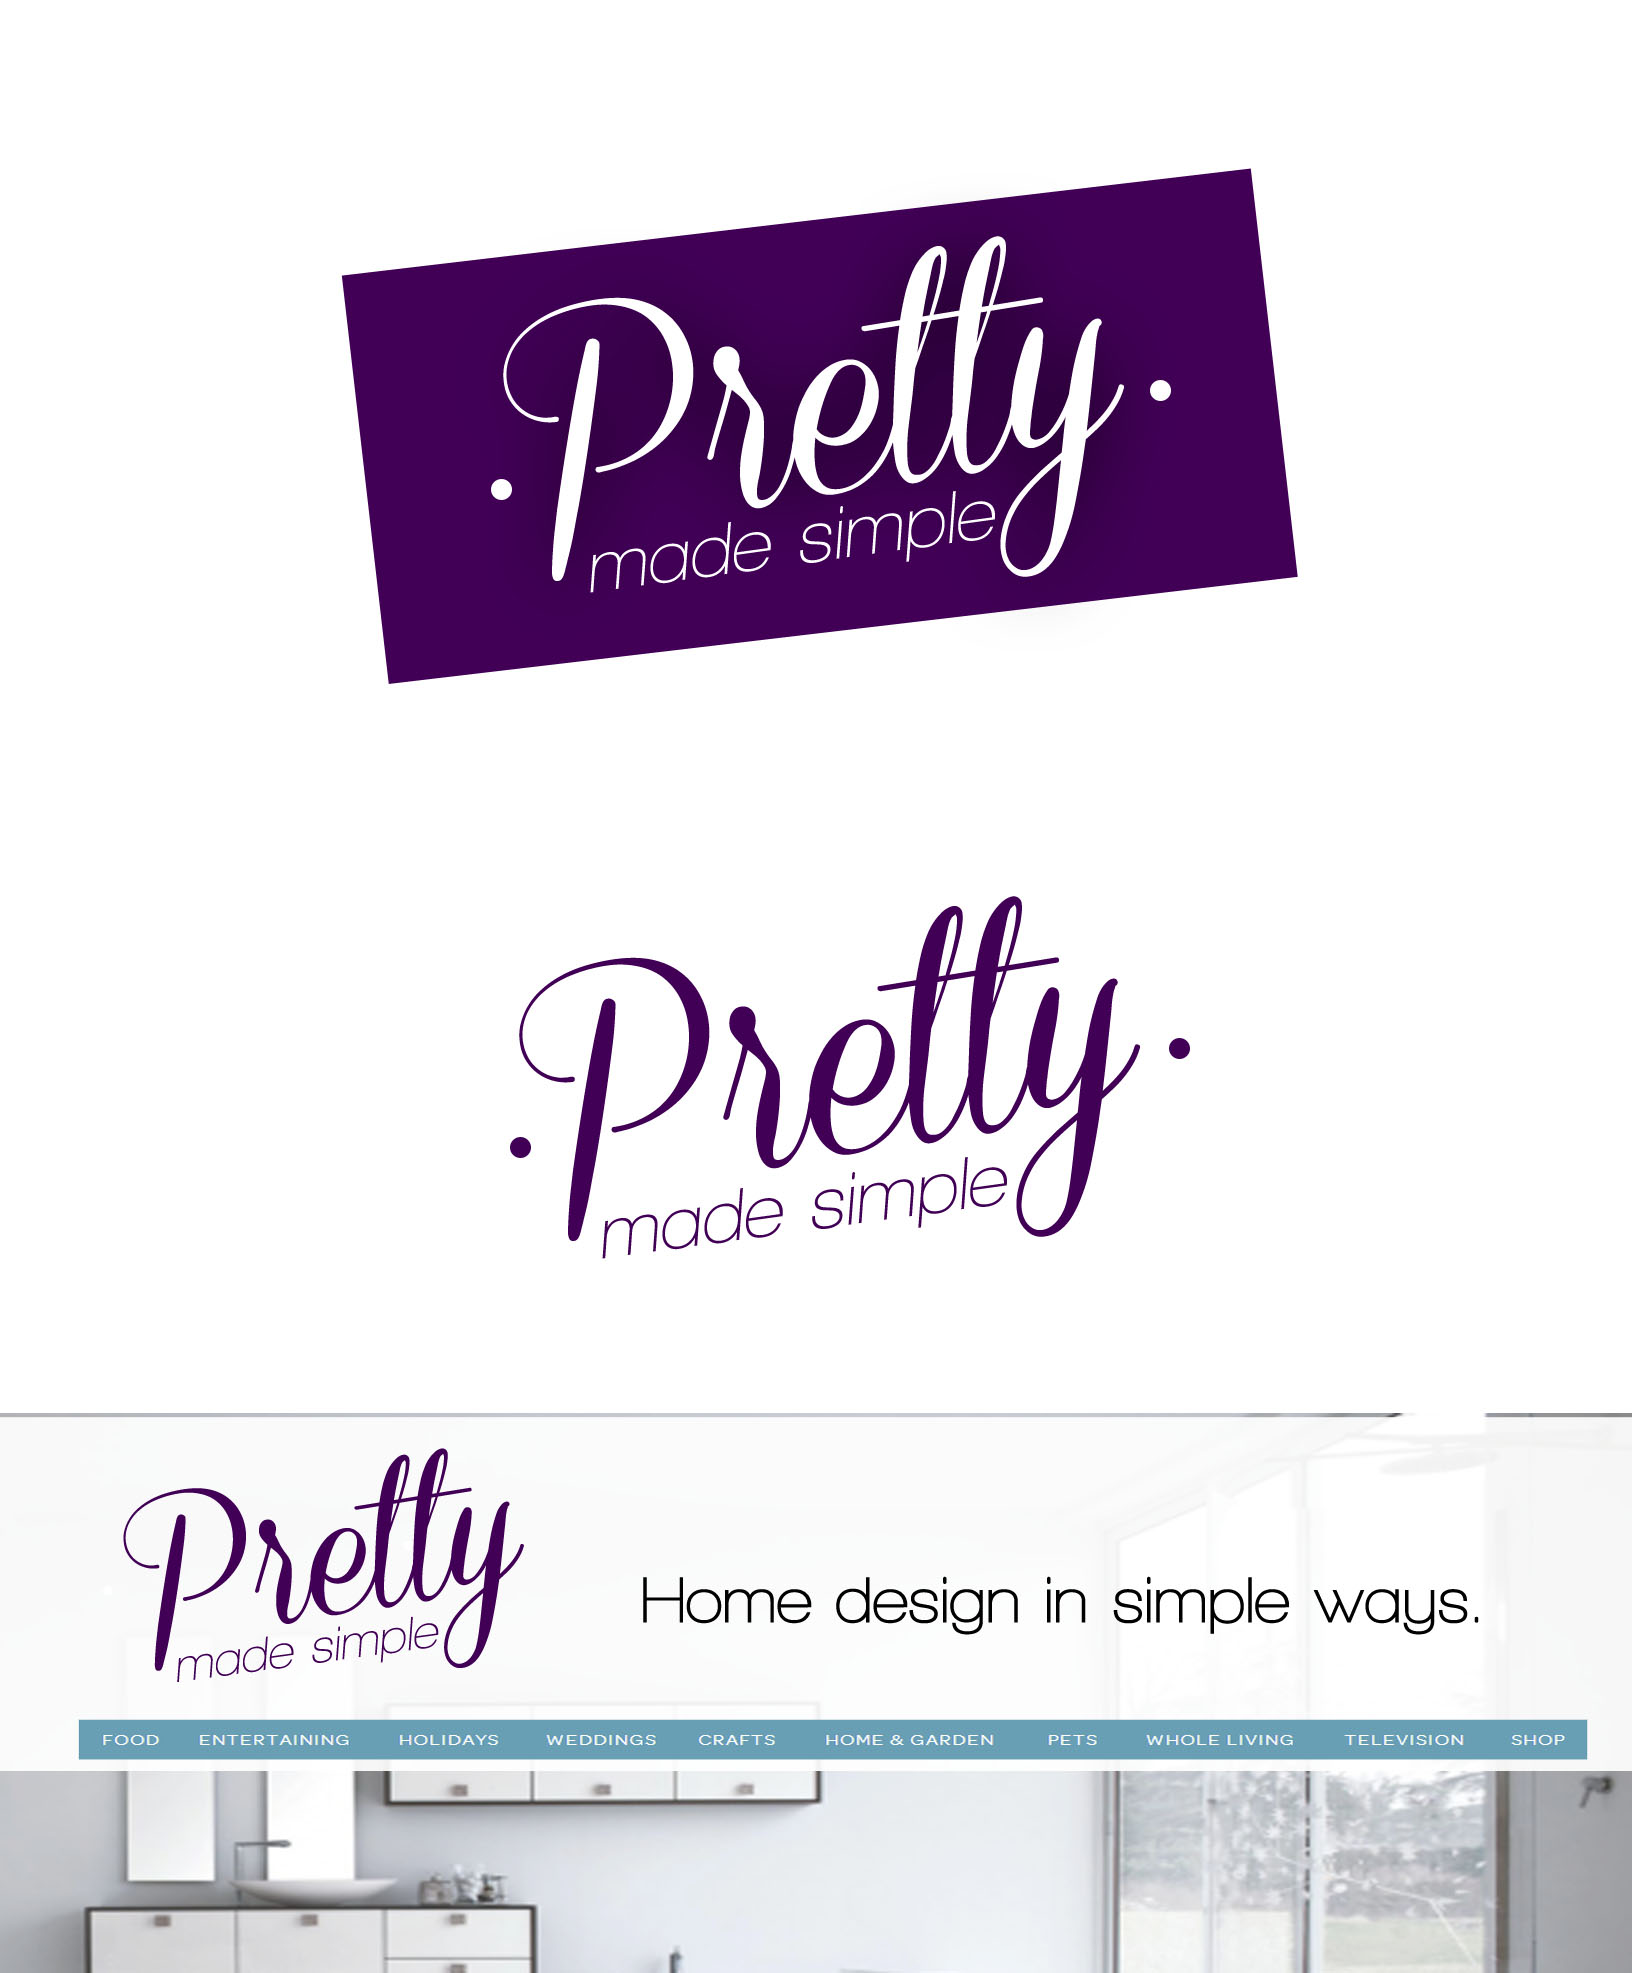 Logo Design by Lama Creative - Entry No. 34 in the Logo Design Contest Pretty Made Simple Logo Design.